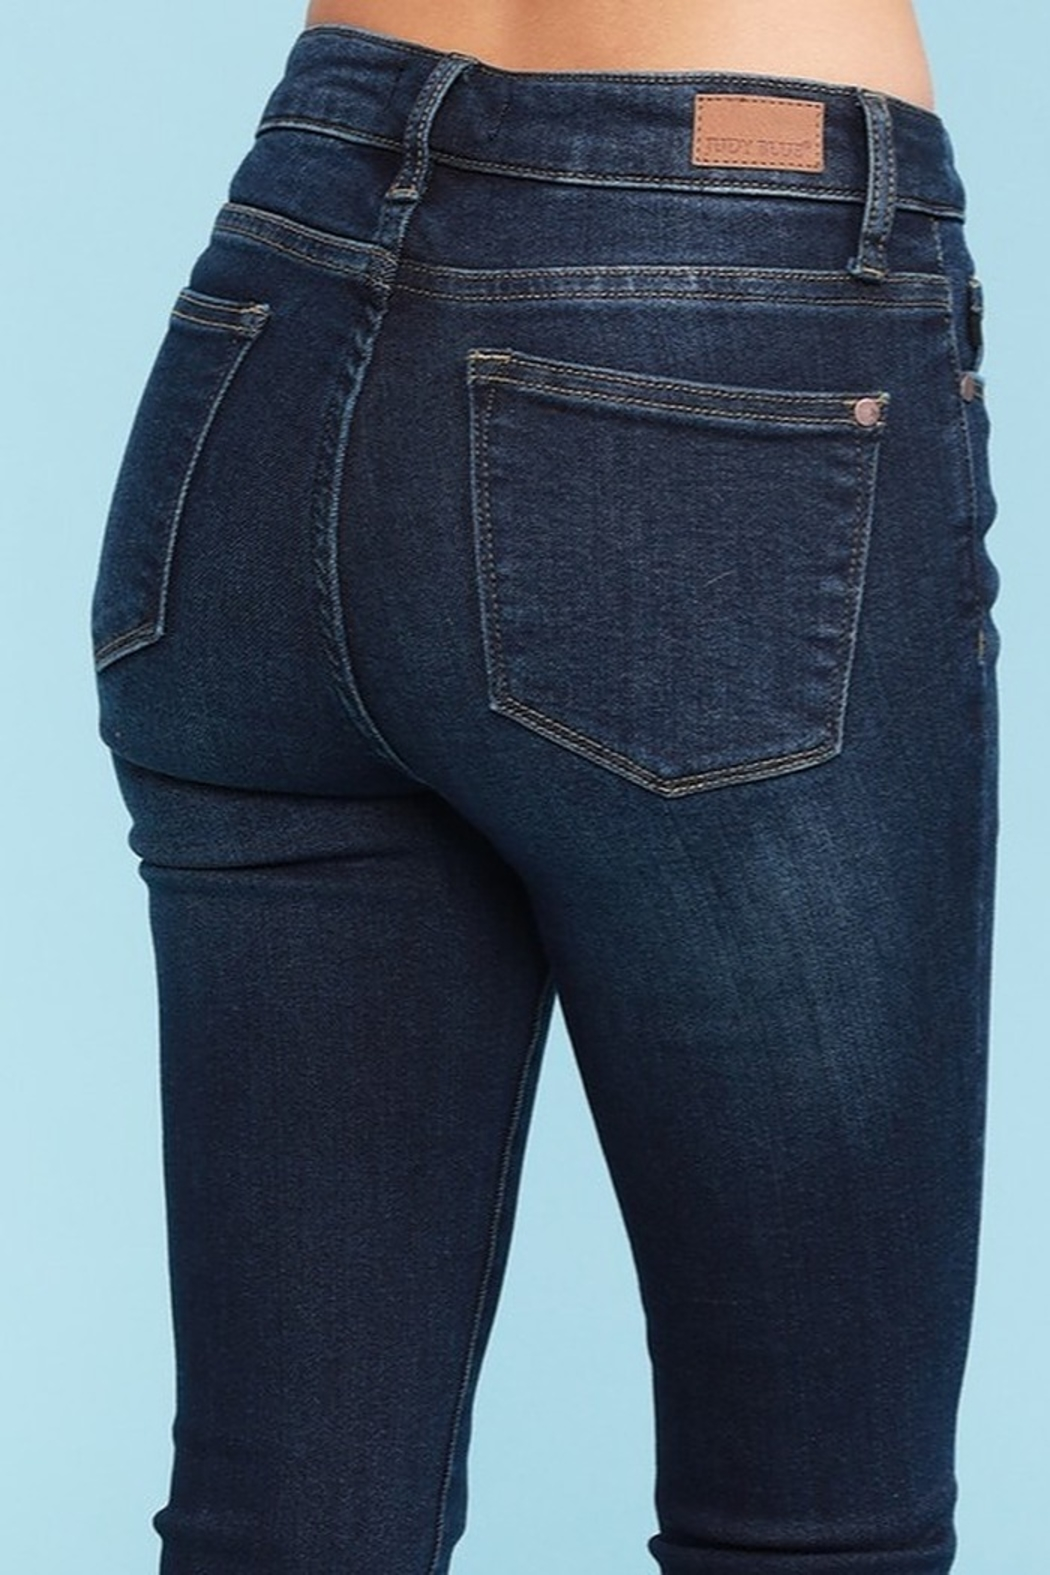 Judy Blue Shark Bite Skinny Jeans - Plus Size - Side Cropped Image